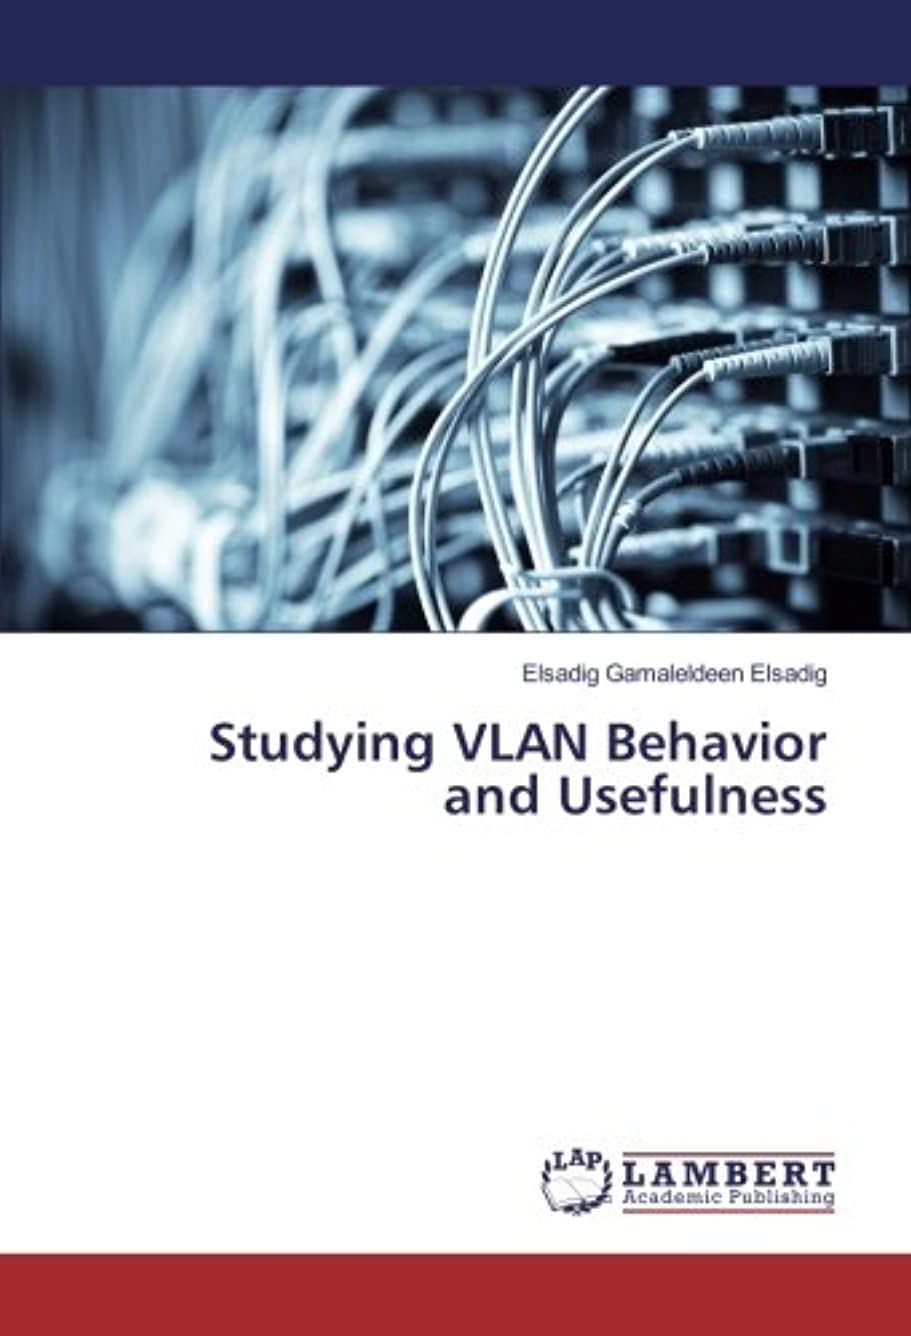 袋蜂症候群Studying VLAN Behavior and Usefulness